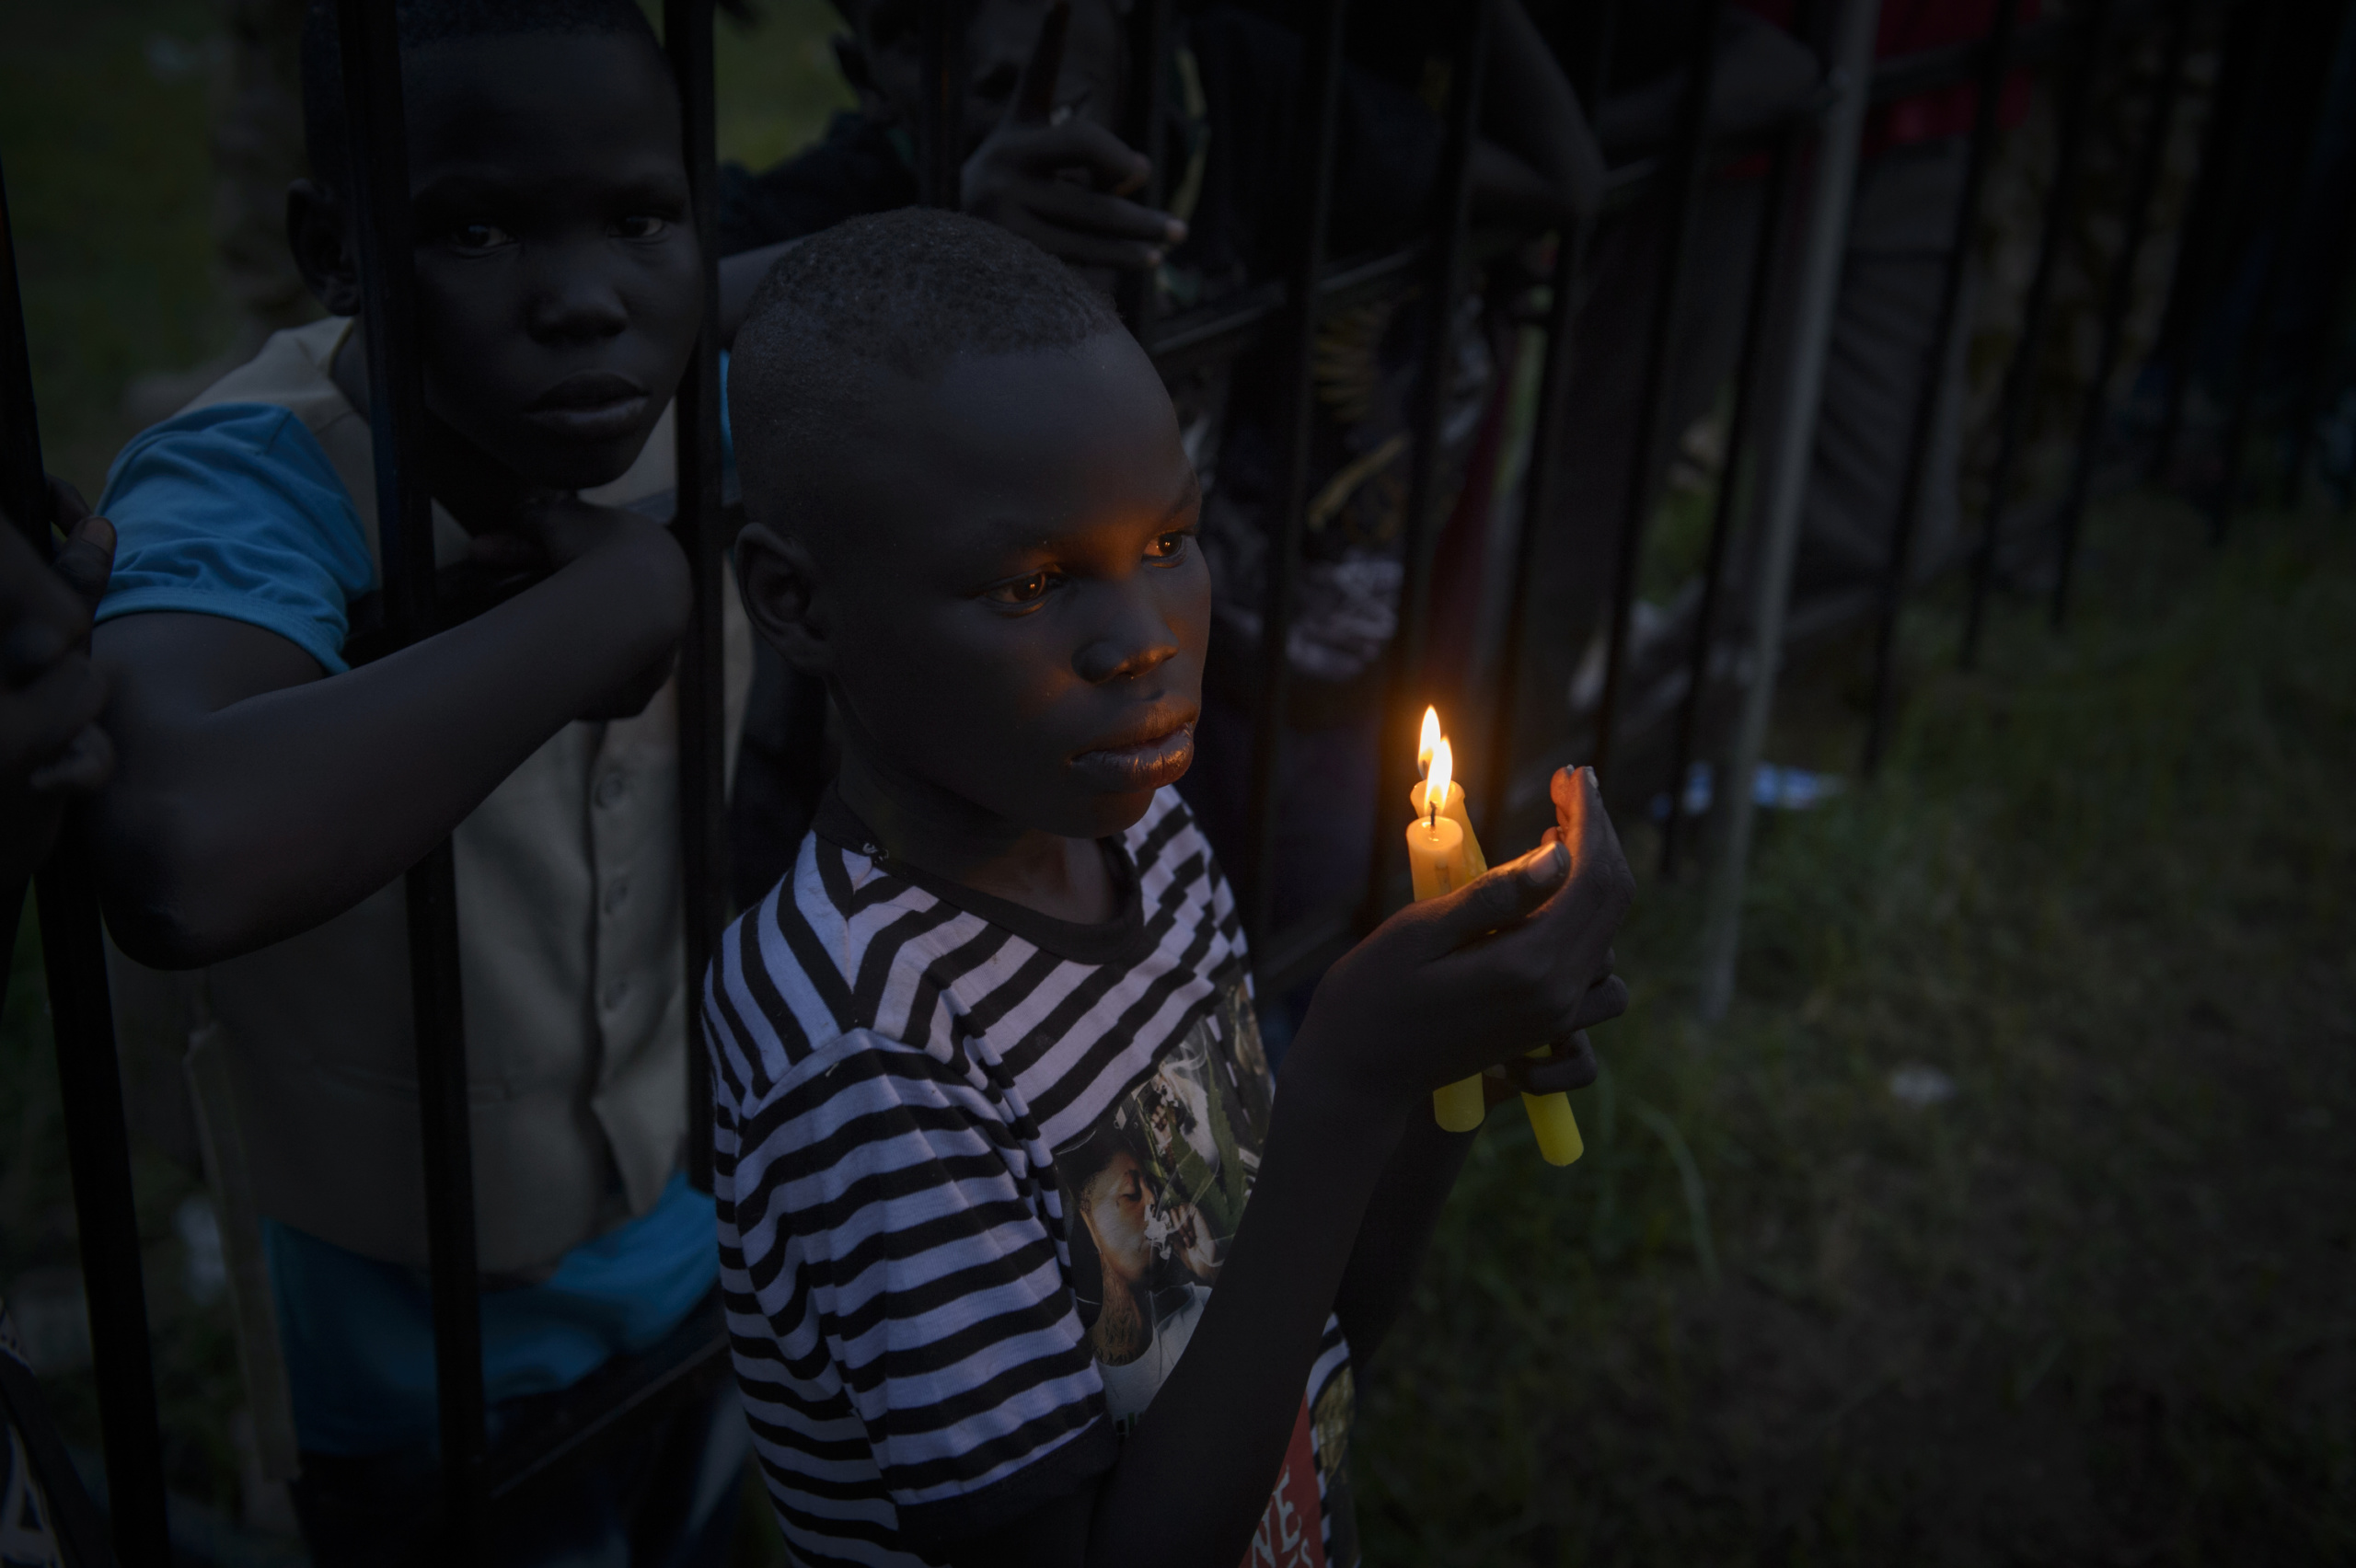 — SOUTH SUDAN Juba, South Sudan. South Sudanese boy hold candles as the clock ticks over to midnight to commemorate the day that South Sudan will officially declare independence from the north. On 9th of July 2011 a new country will be born in Africa. The Republic of South Sudan will be the 54th African state and the 193rd nation in the world. But South Sudan is a very poor country, despite its large oil reserves, which account for 98 percent of its income. South Sudan's society is deeply divided along tribal lines. The main clan is the Dinka, a pastoral semi-nomadic population. Violence is endemic to the region, often as a consequences of cattle ownership issues. But violence is also very much fed by the uncountable number of weapons circulating in the country, the heavy legacy of a 30 year long civil war against North Sudan.